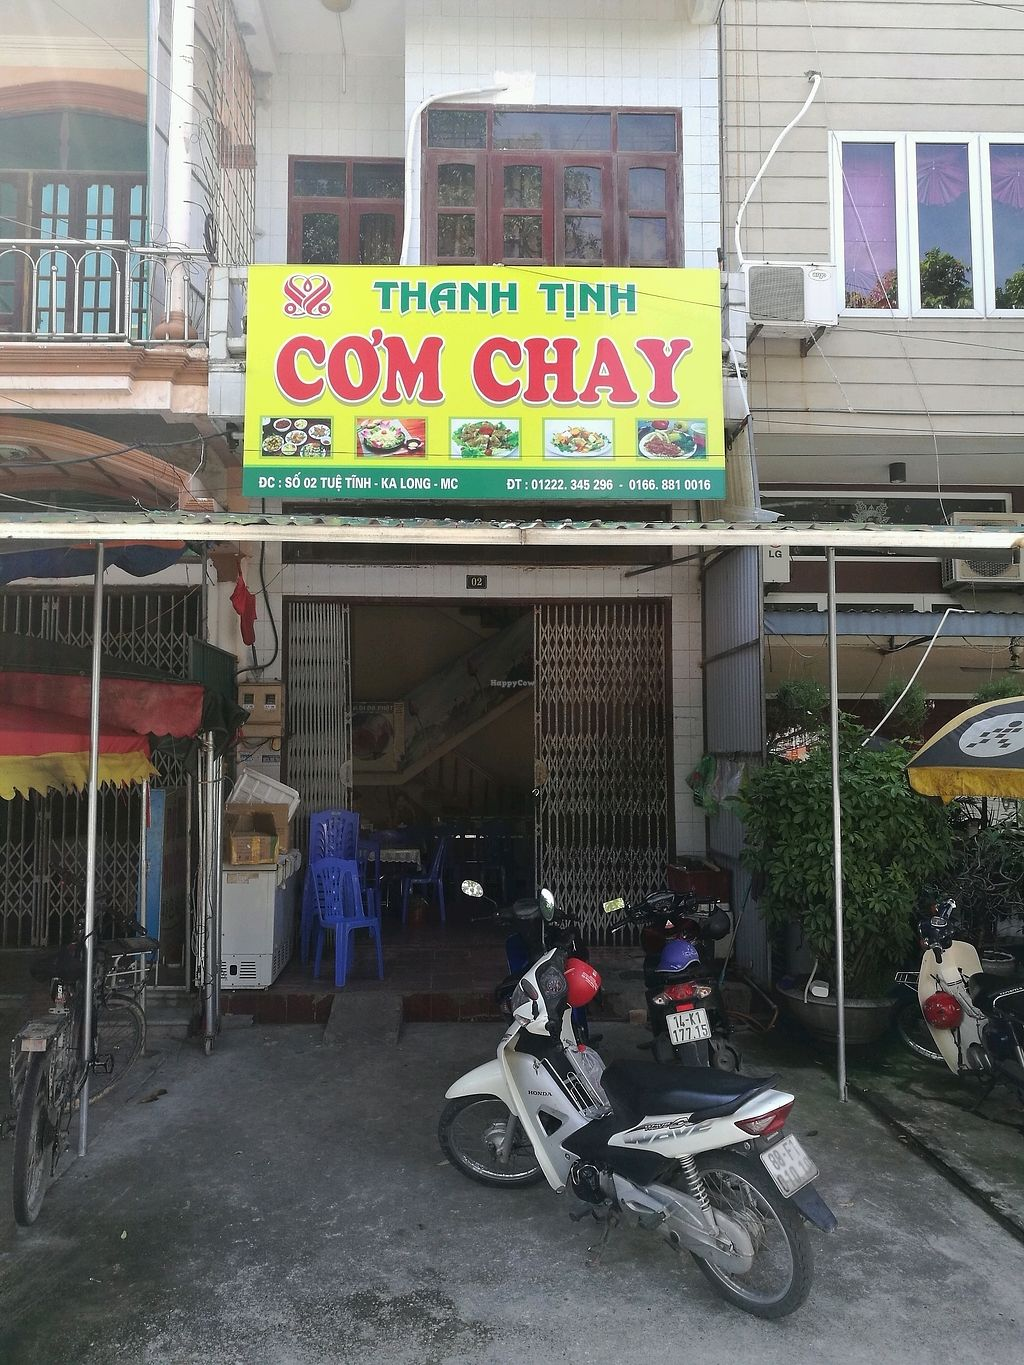 """Photo of Thanh Tinh  by <a href=""""/members/profile/MathiasHauge"""">MathiasHauge</a> <br/>entrance  <br/> September 22, 2017  - <a href='/contact/abuse/image/80680/306992'>Report</a>"""